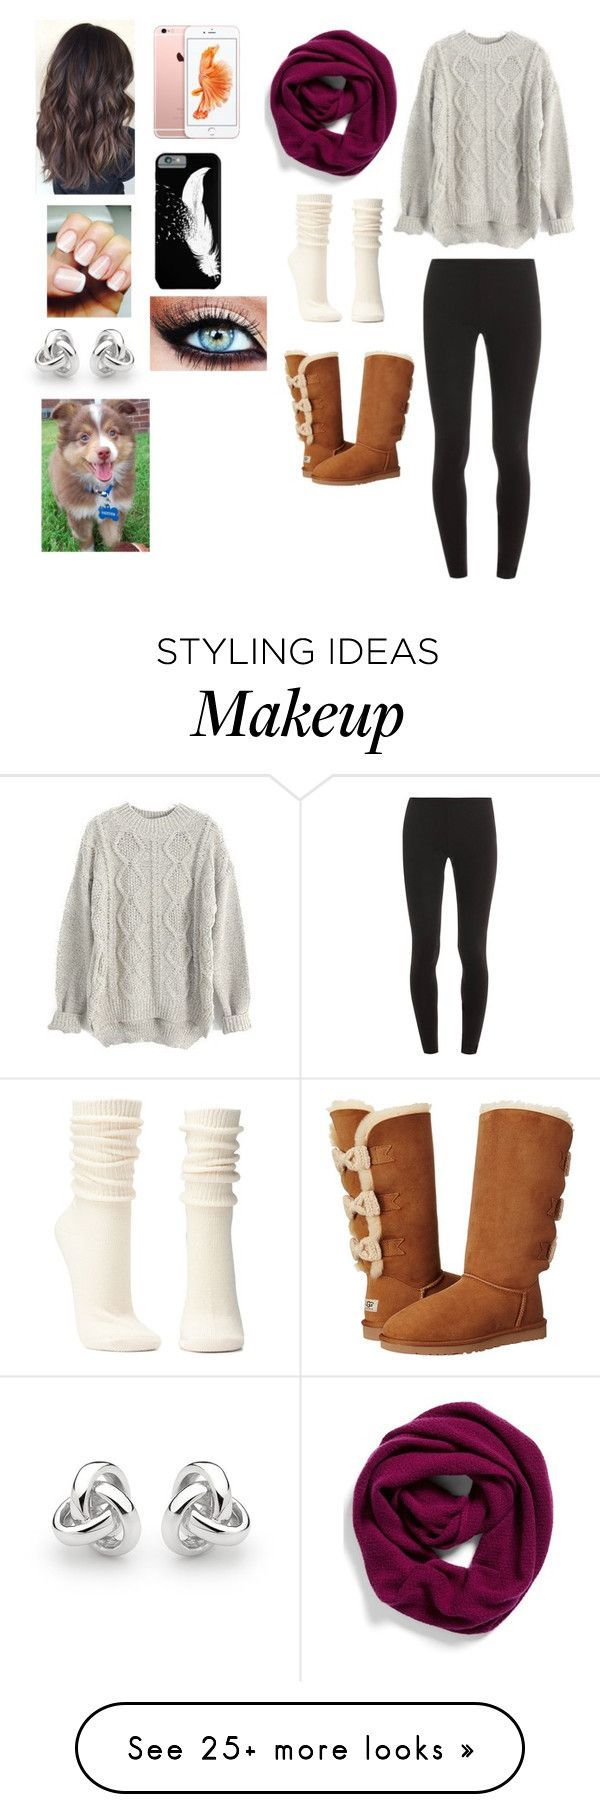 """""""Winter outfit"""" by kaitlynk1222 on Polyvore featuring Halogen, Splendid, UGG Australia, Charlotte Russe and Georgini"""